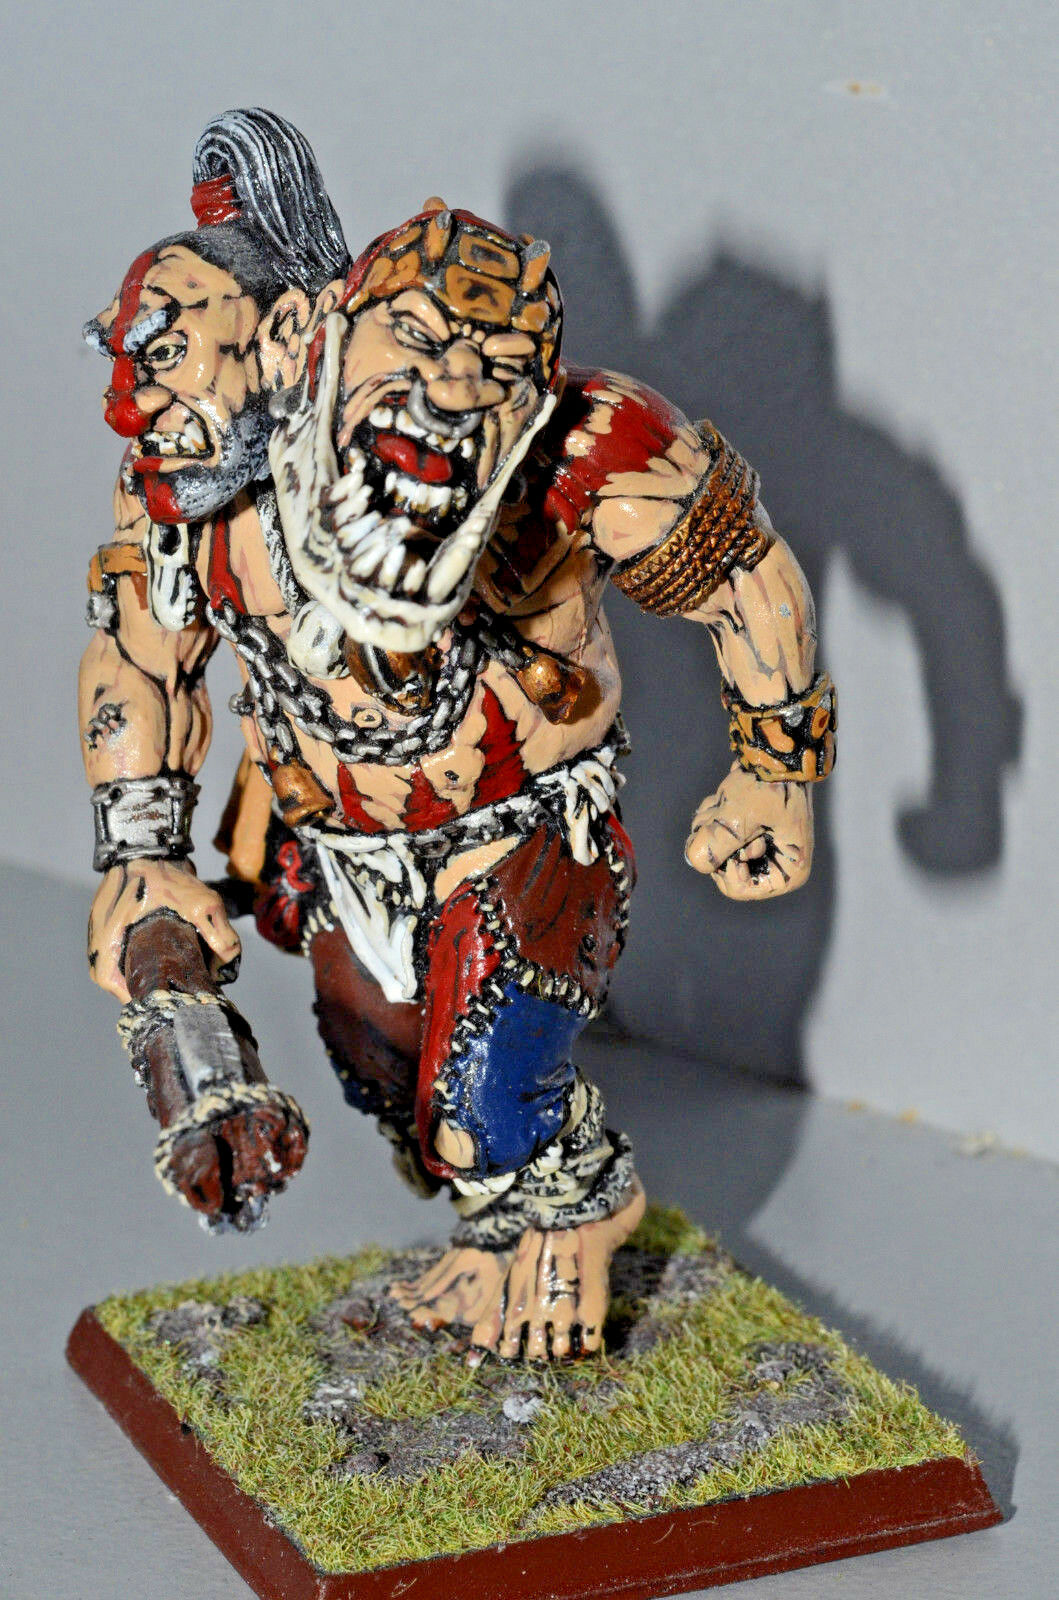 WARHAMMER GEANT GIANT GIANT GIANT CONVERSION CHAOS METAL SOCLE AIMANTE PEINT PRO PAINTED 3ec